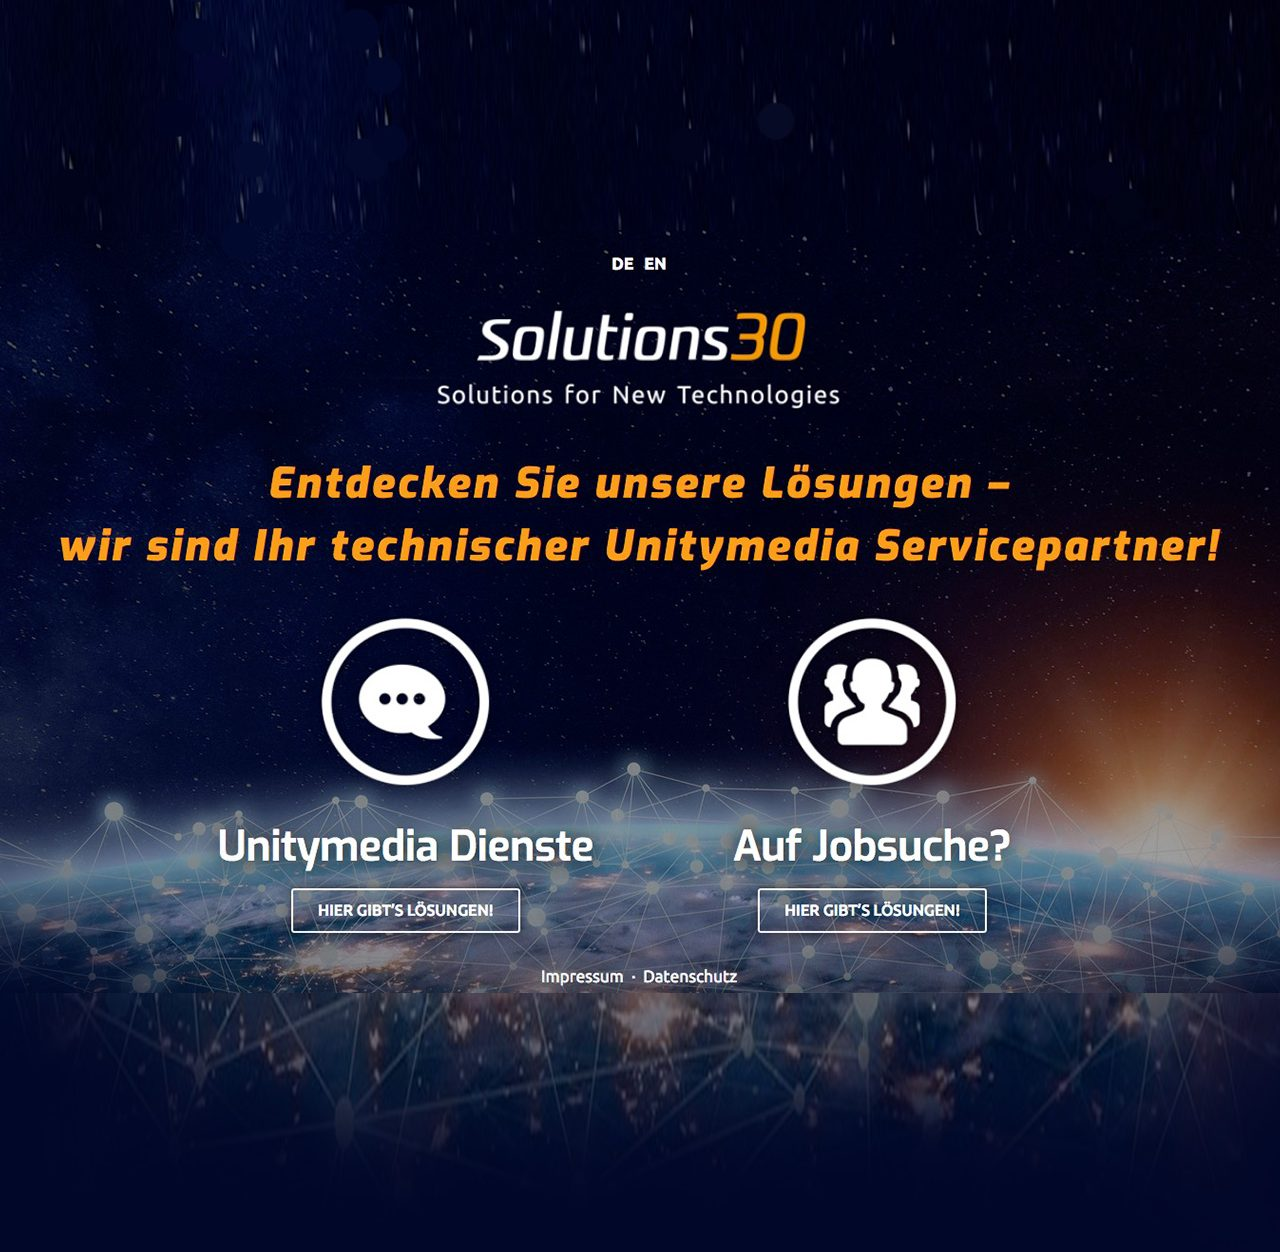 solutions30_1280x1280